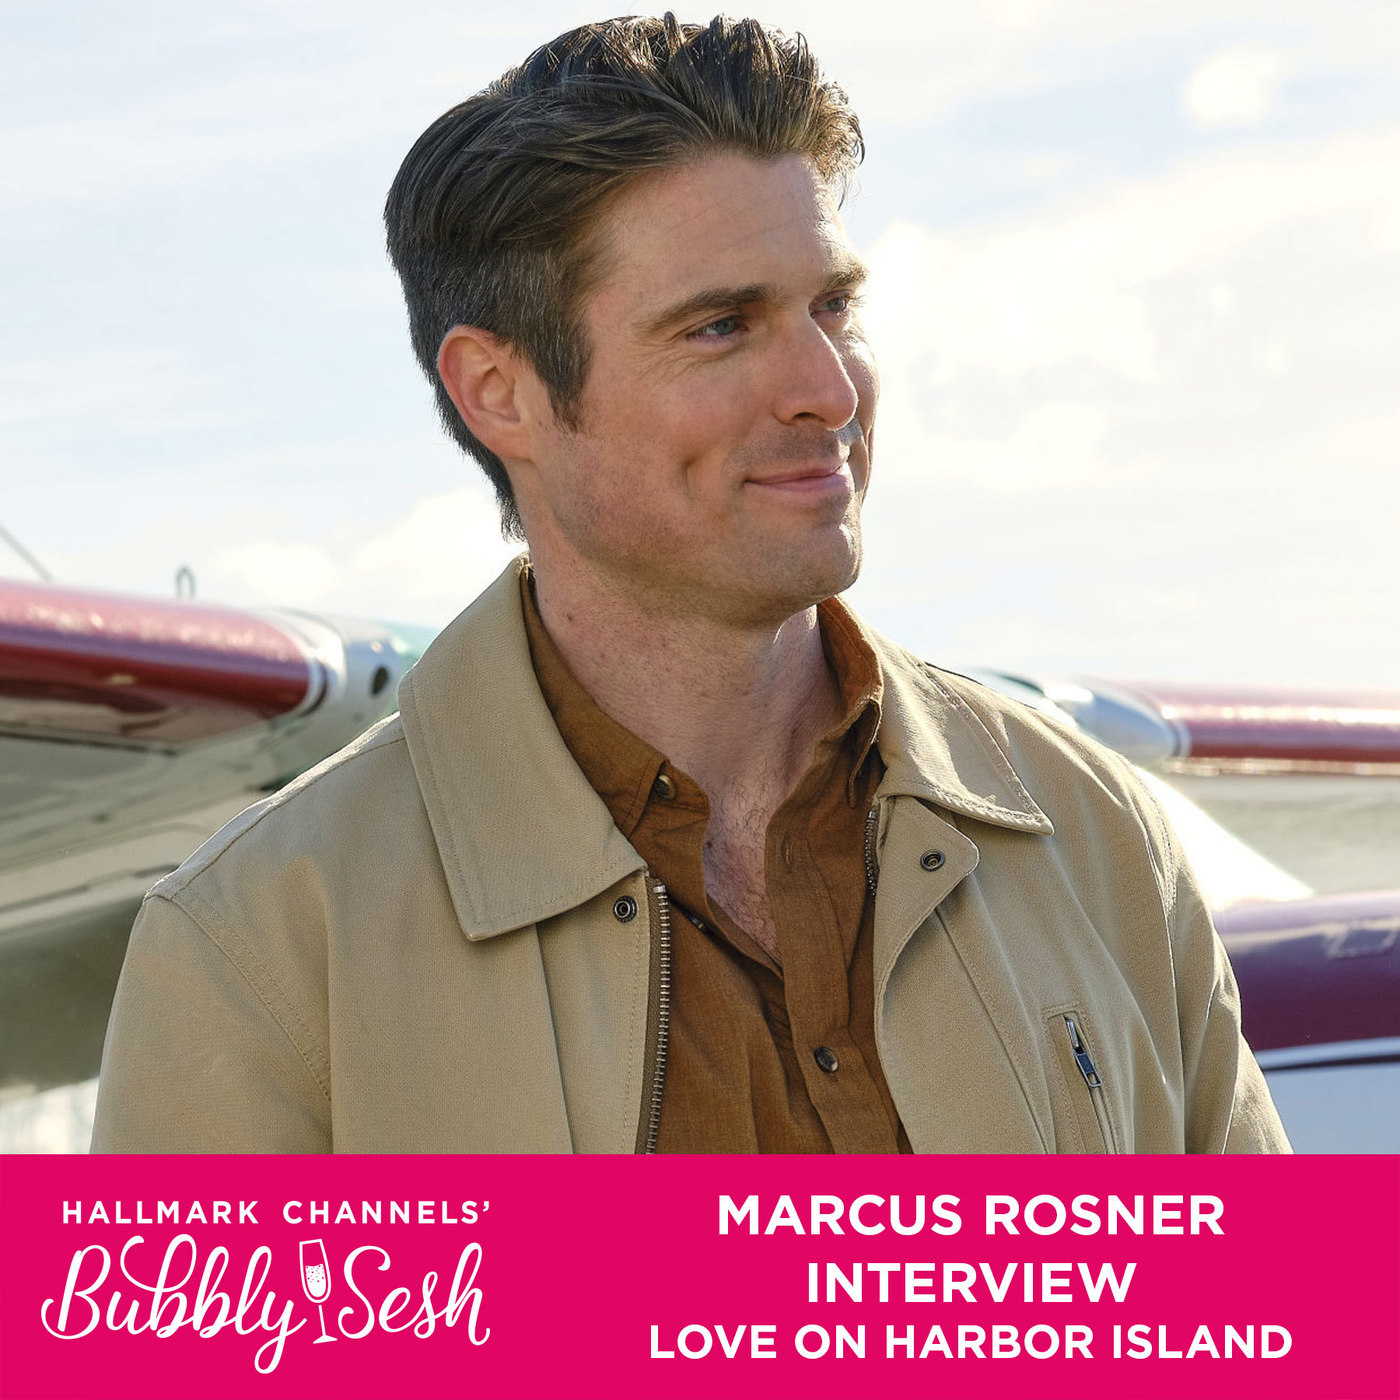 Marcus Rosner Interview, Love on Harbor Island